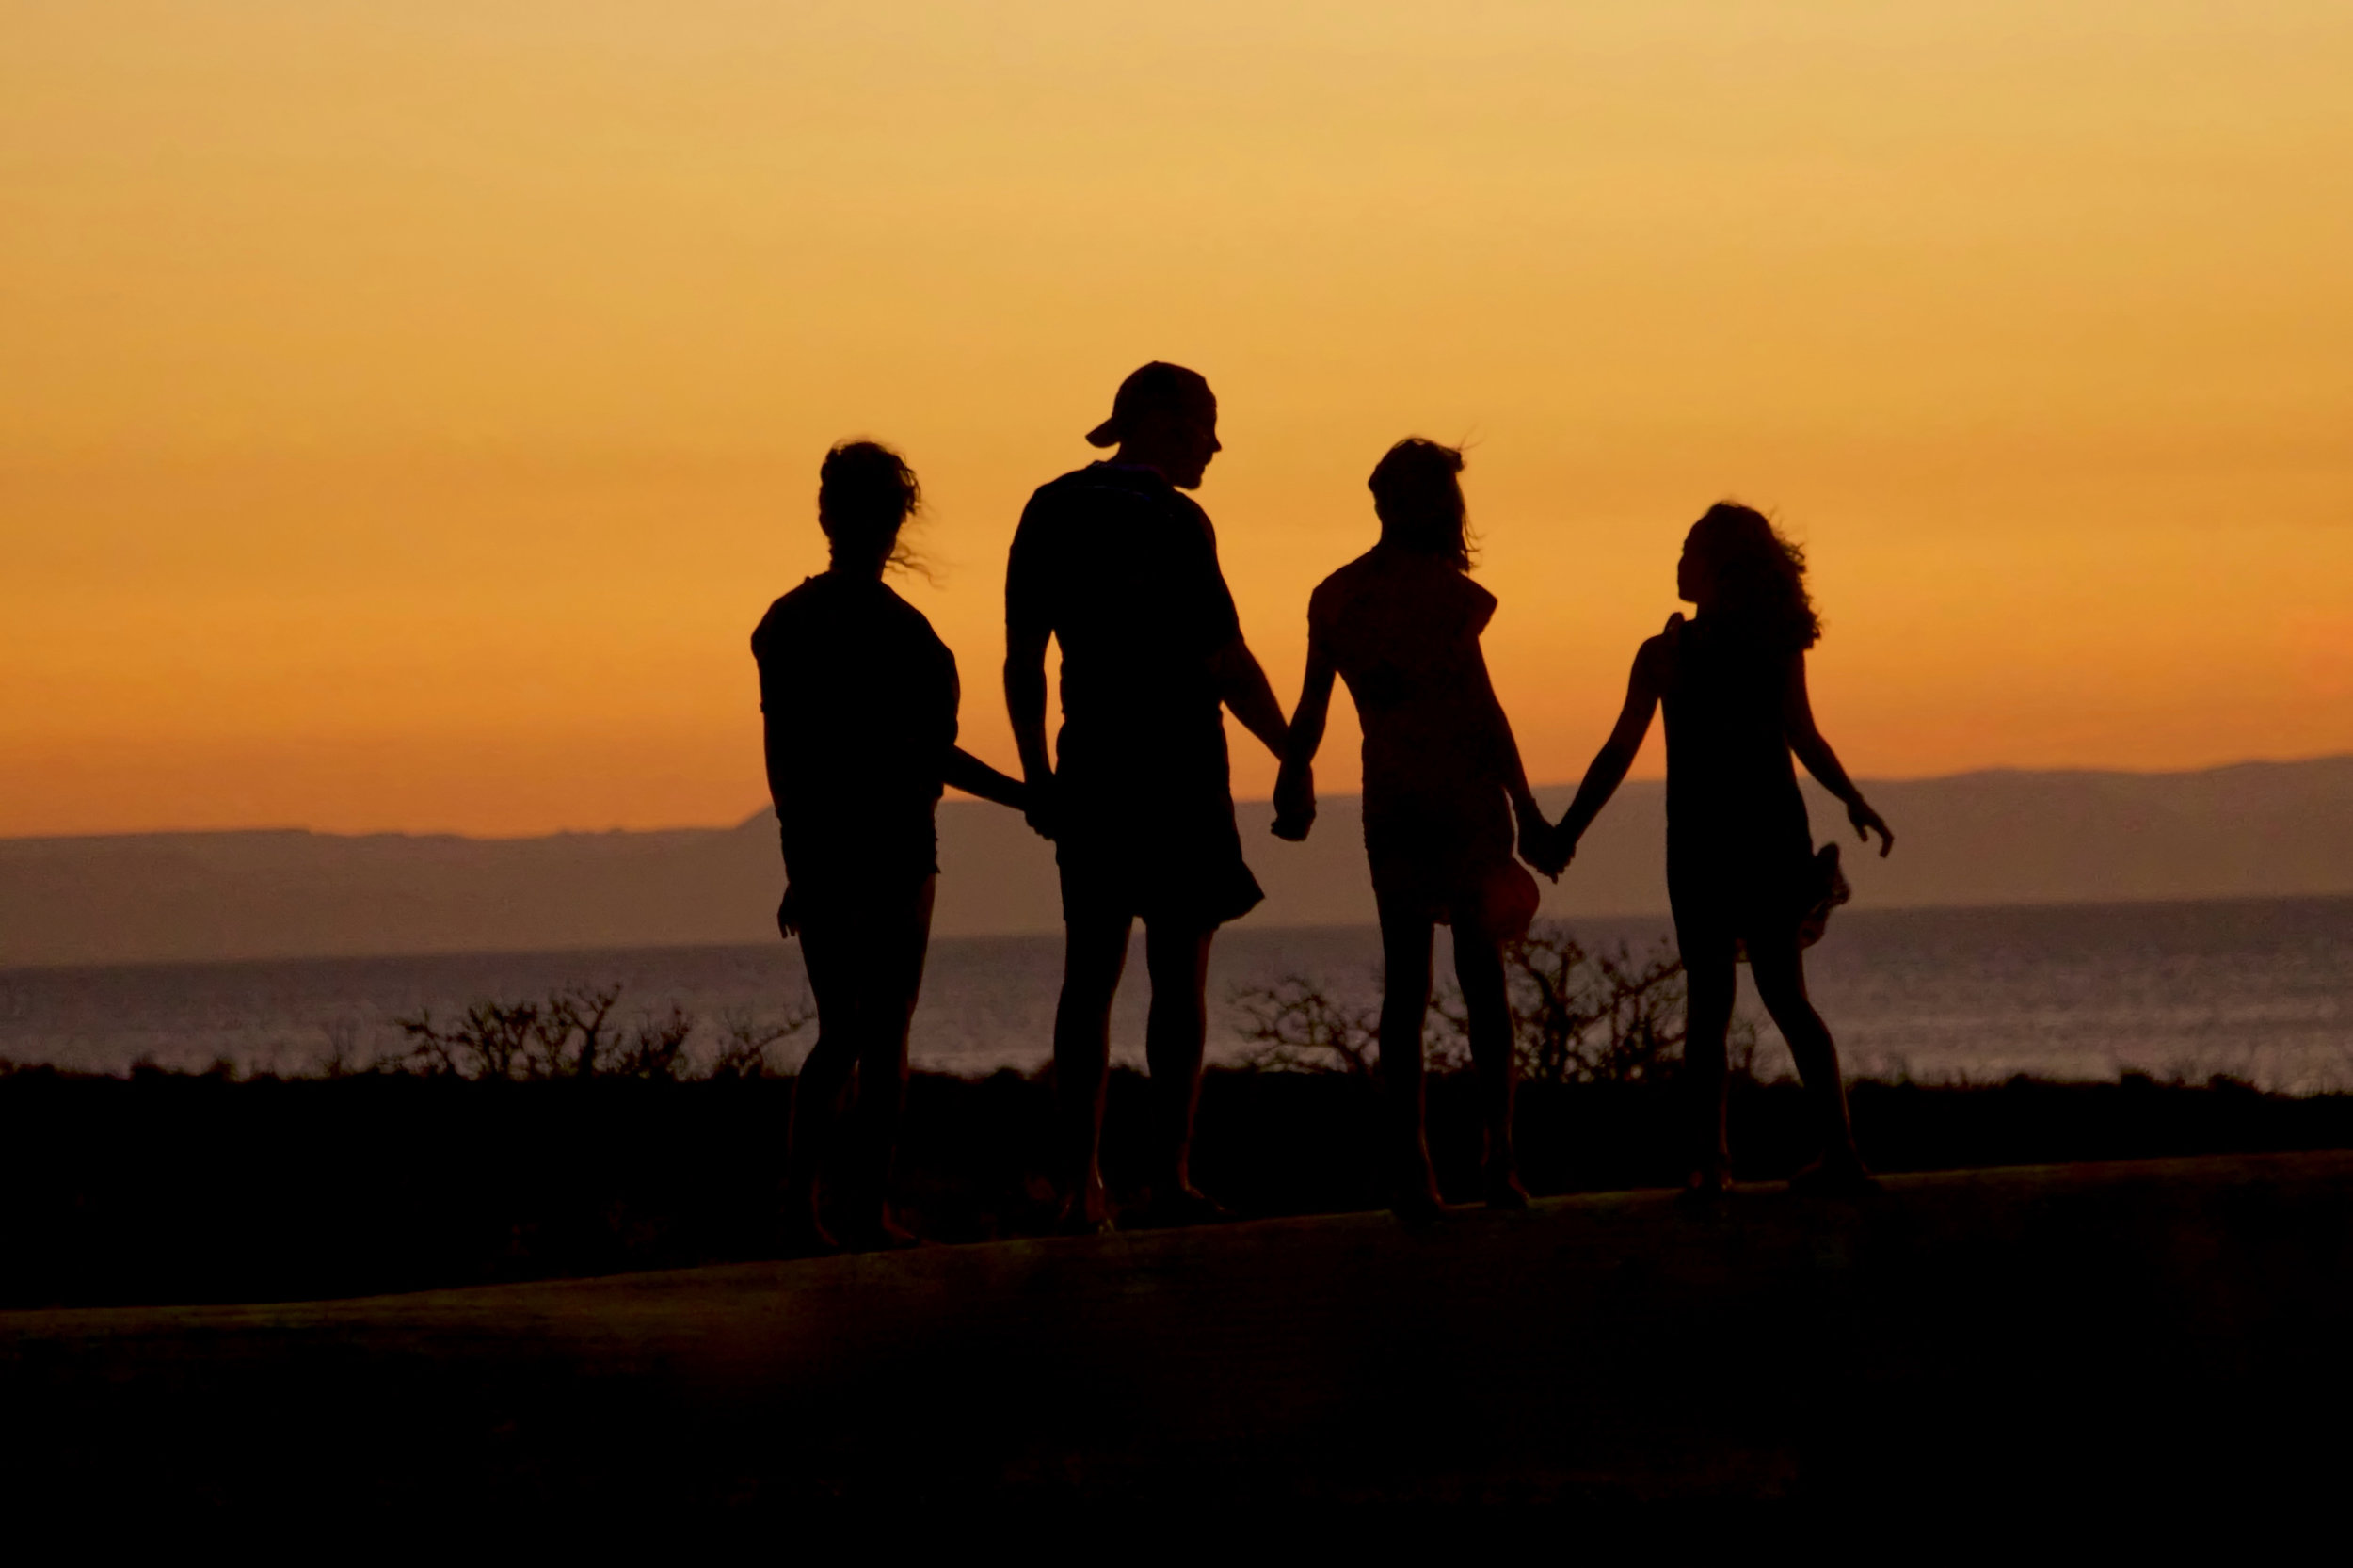 A family holding hands in front of a sunset.